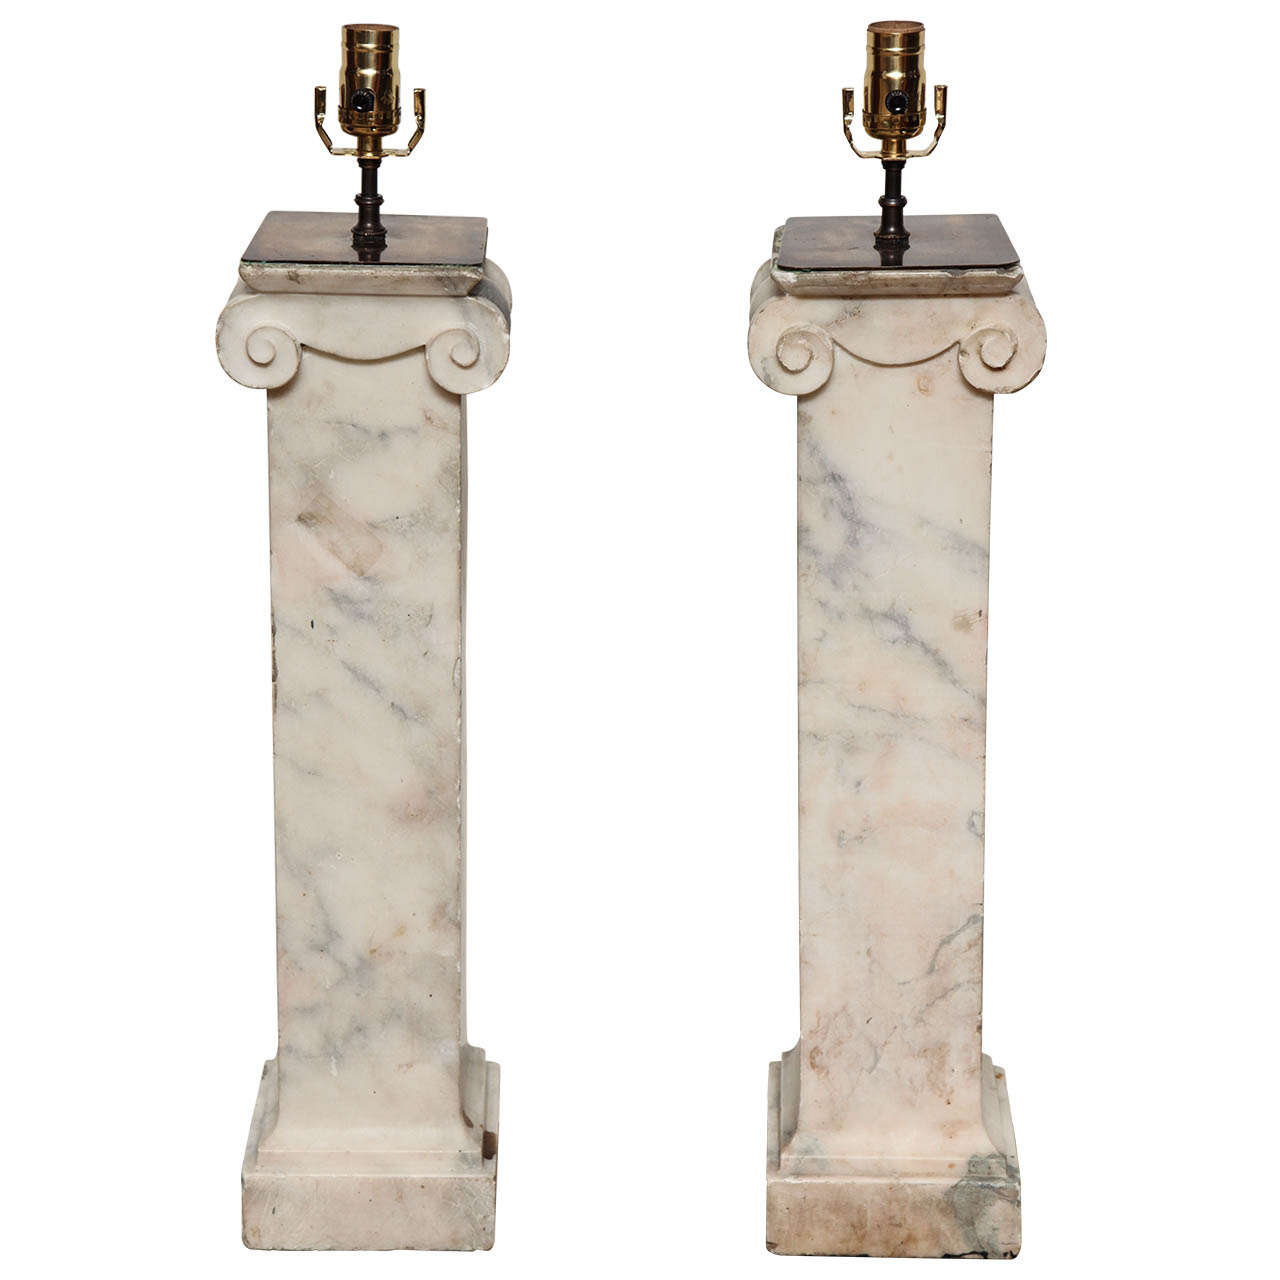 Pair of Square Ionic Columns Converted to Lamps, English Style